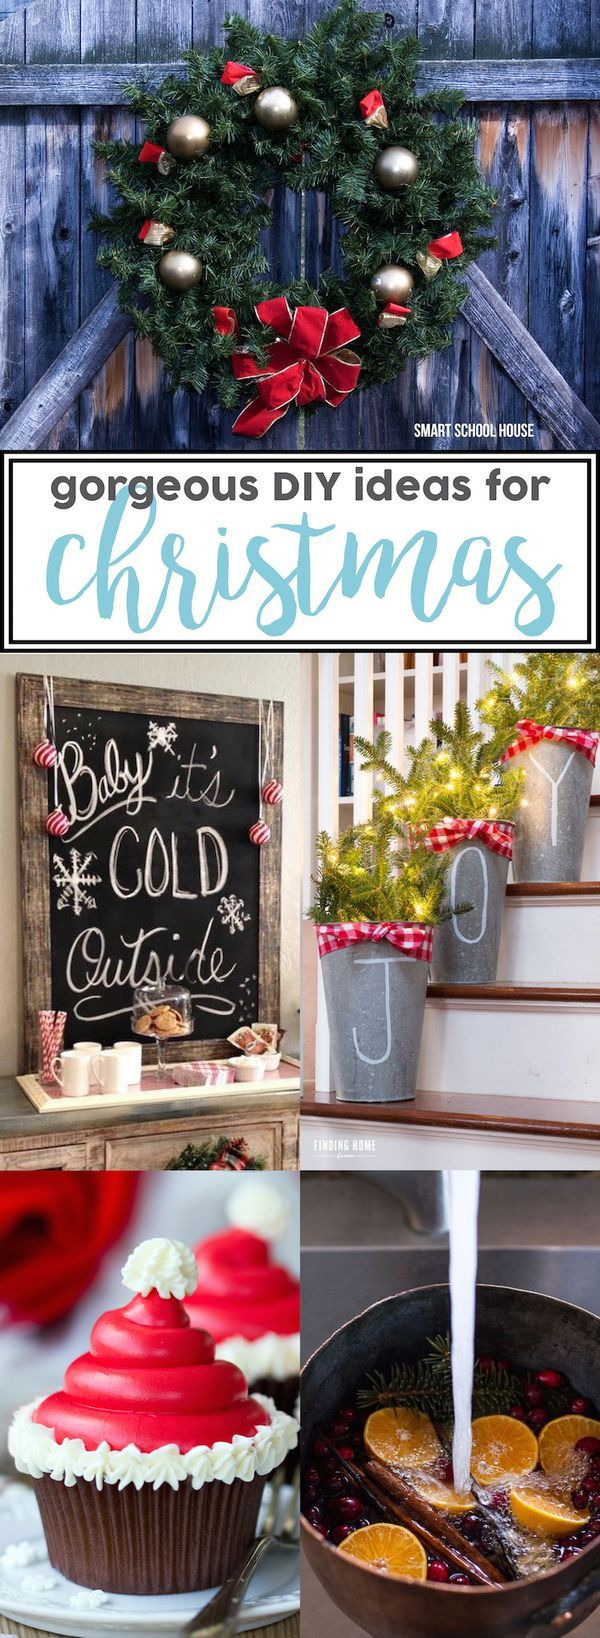 Gorgeous DIY ideas for Christmas. Home decor. Get in the holiday spirit with these creative crafts.